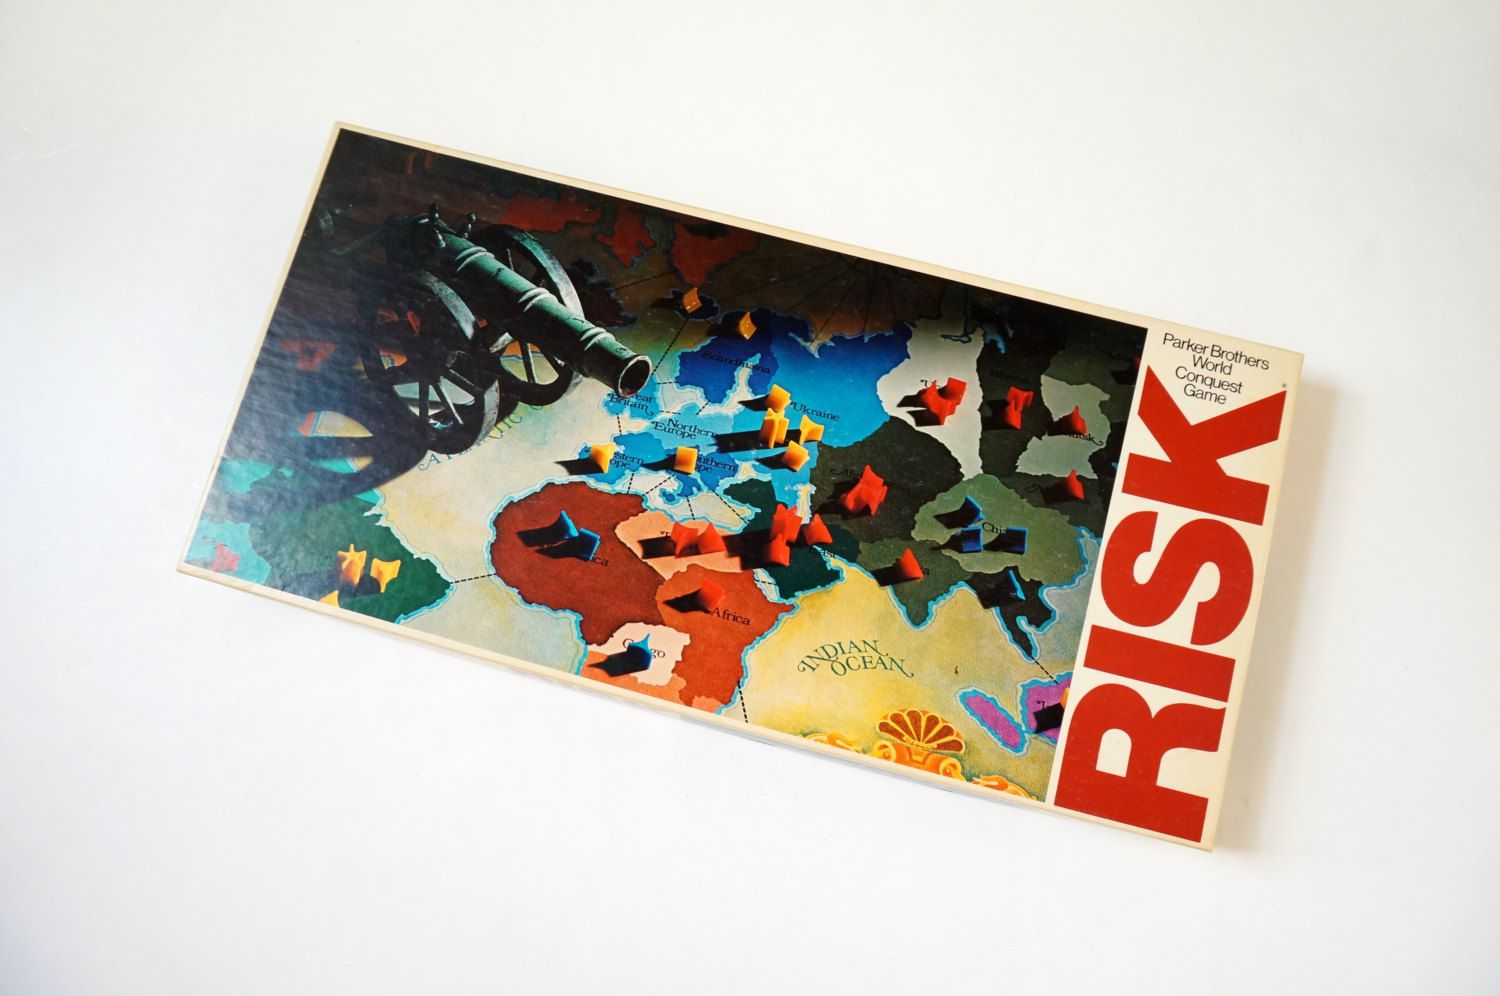 Handmade Game of Thrones, RISK board game. (With images